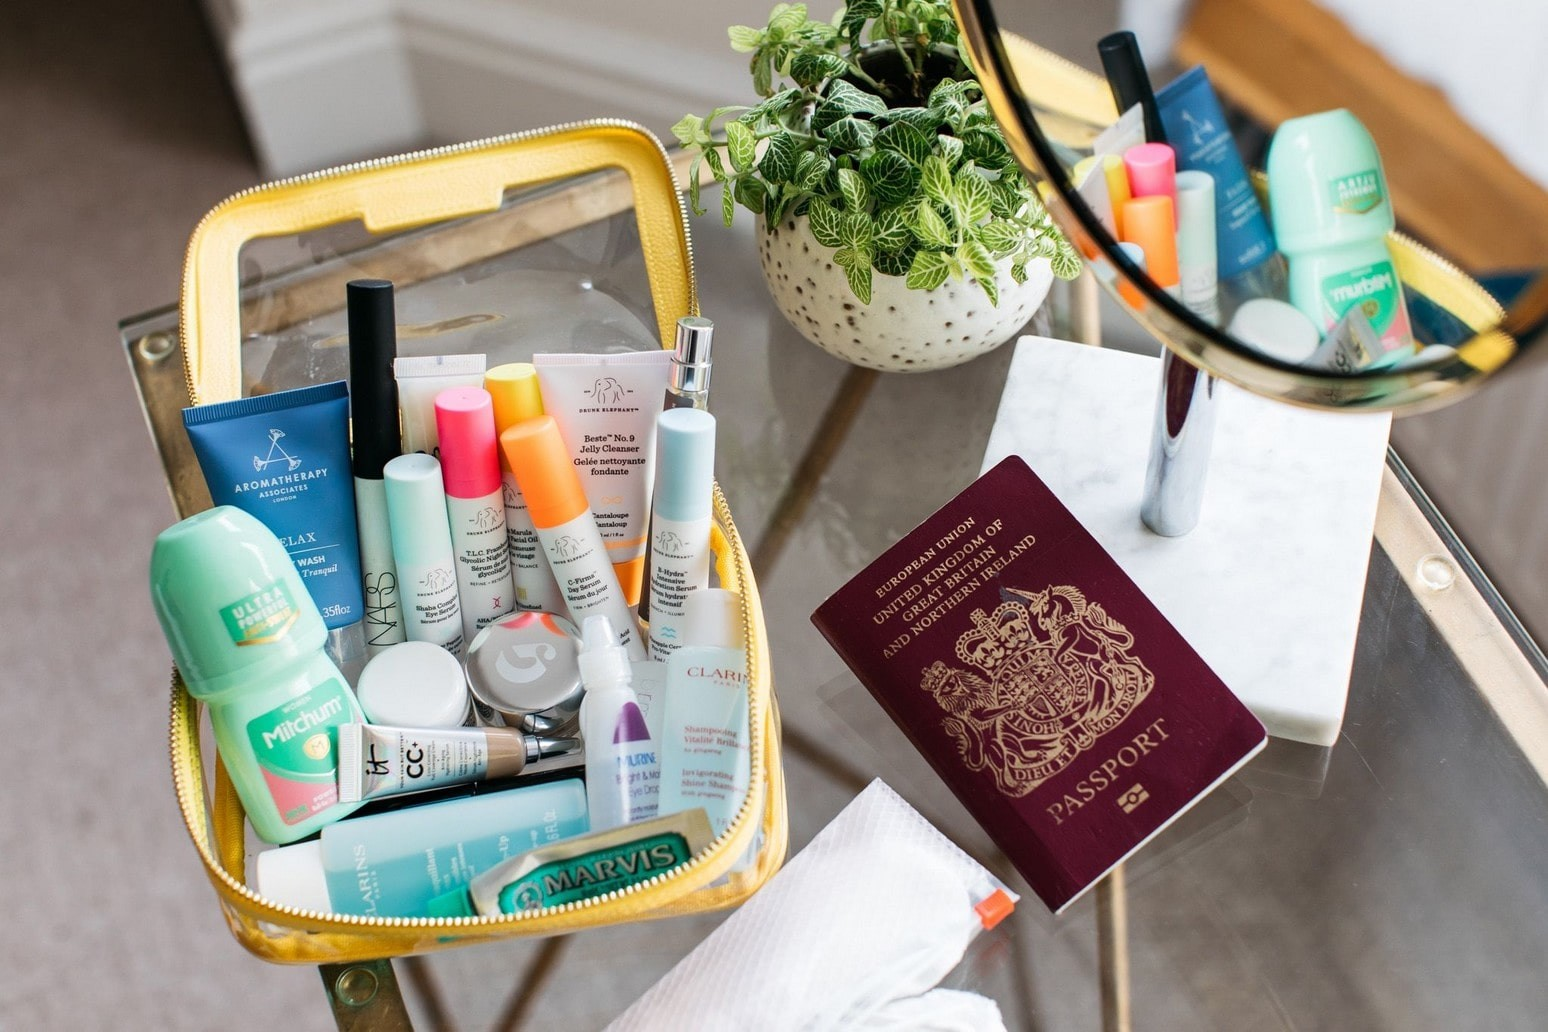 miniatures within a clear plastic makeup bag next to a passport.